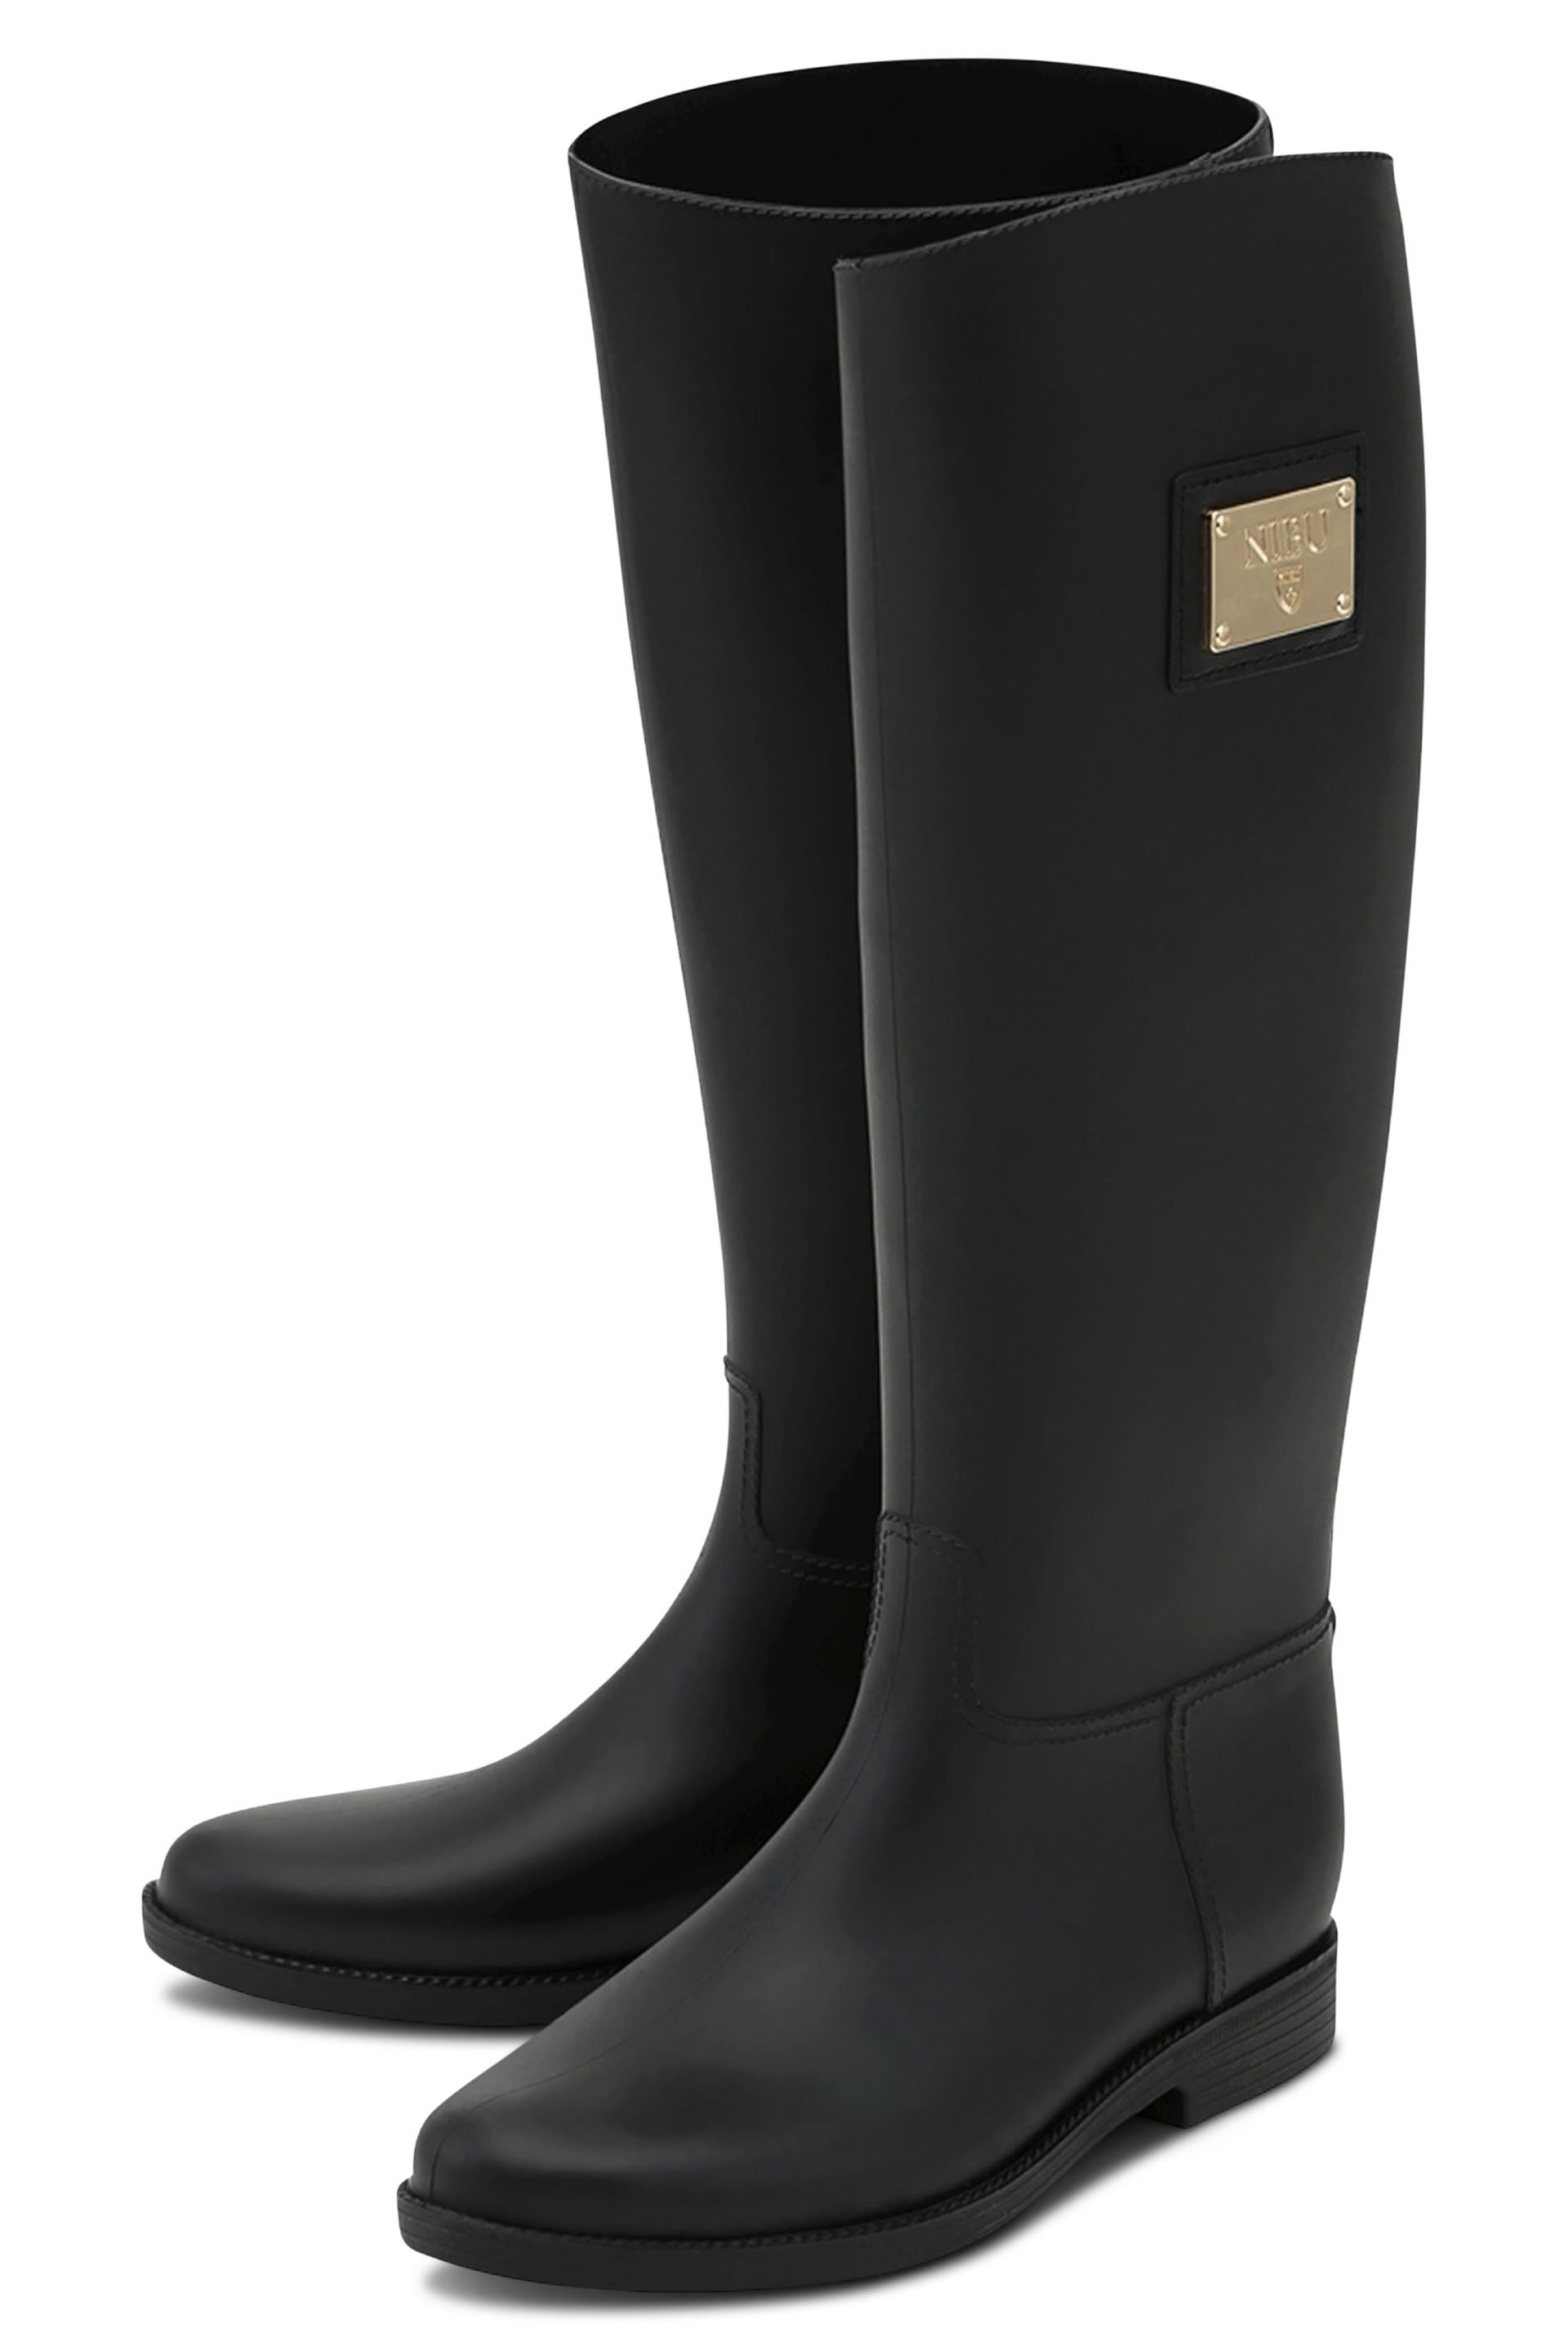 Black rainboots with gold-colour logo